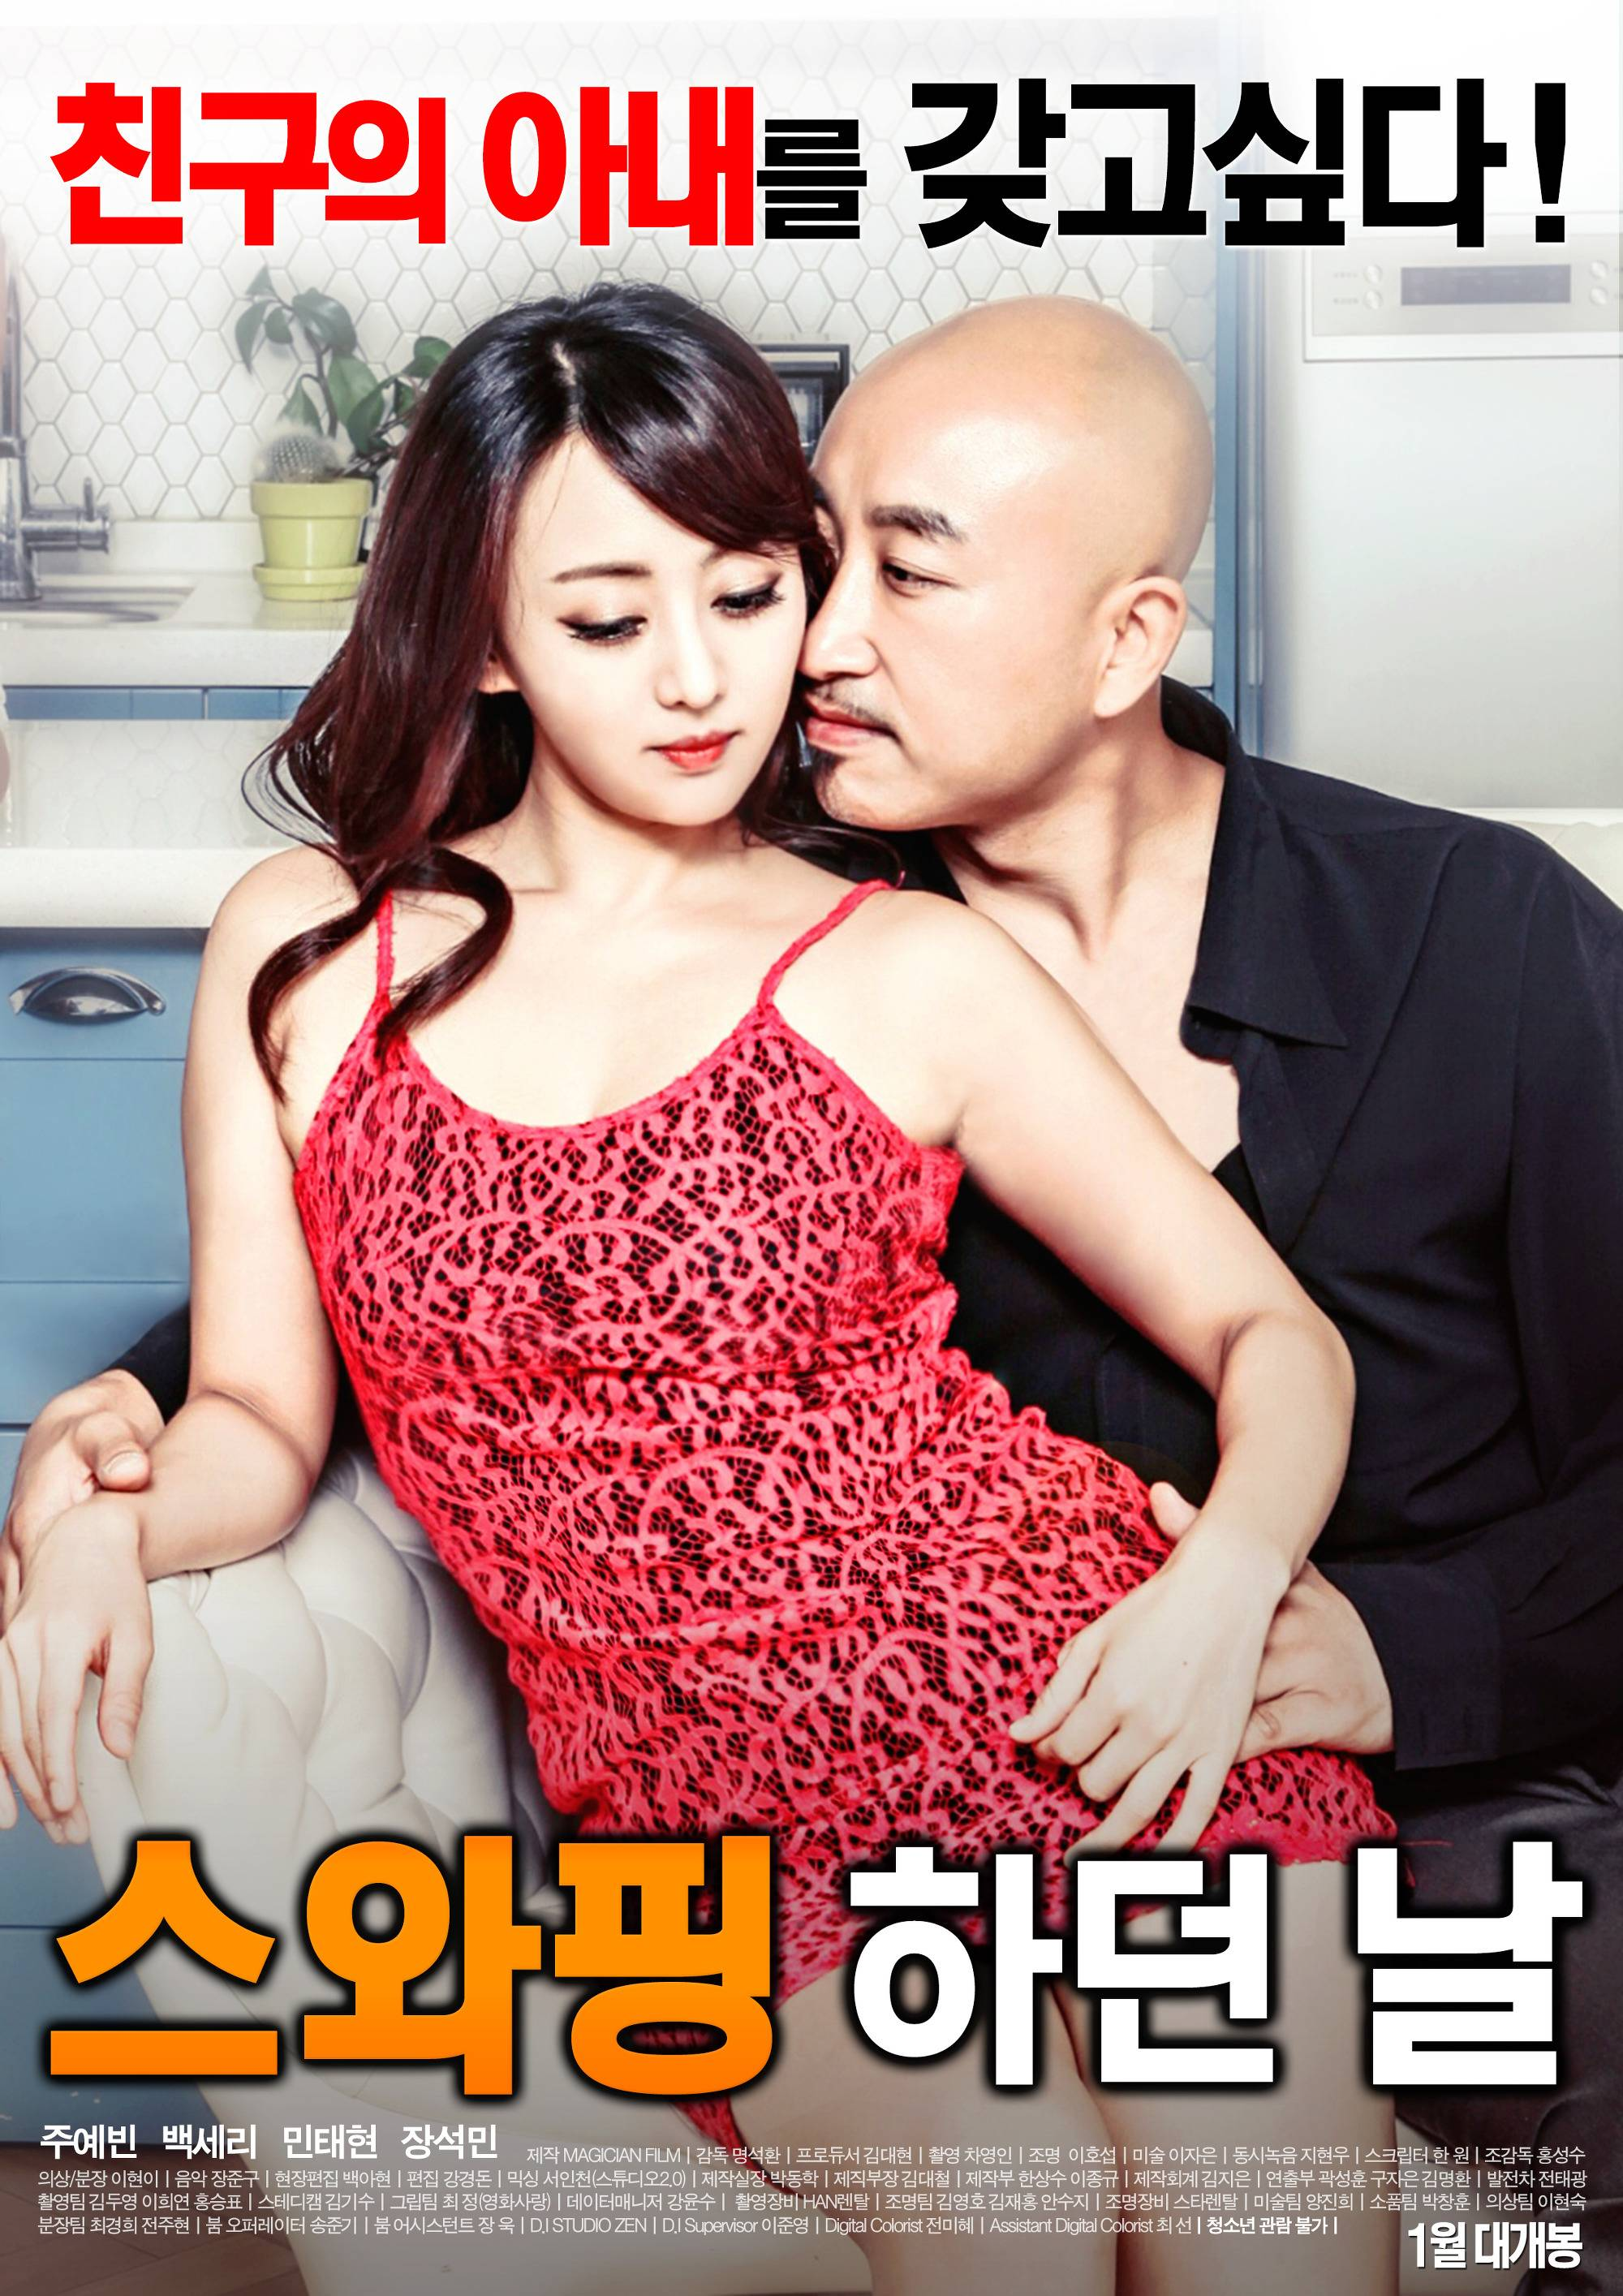 Korean Swapping